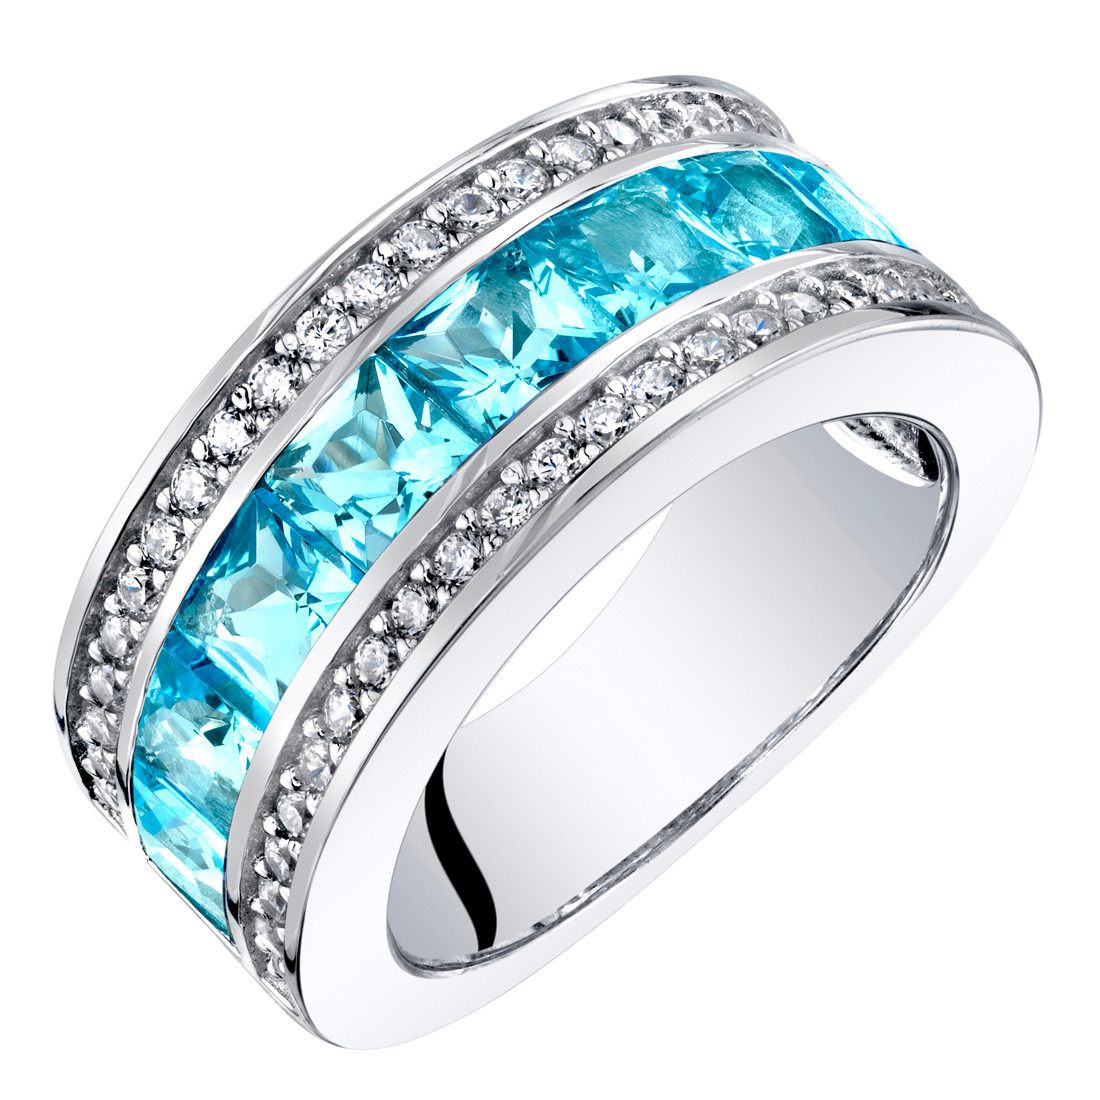 This is a picture of Sterling Silver Princess Cut Swiss Blue Topaz 35-Row Wedding Ring Band 35.355 Carats